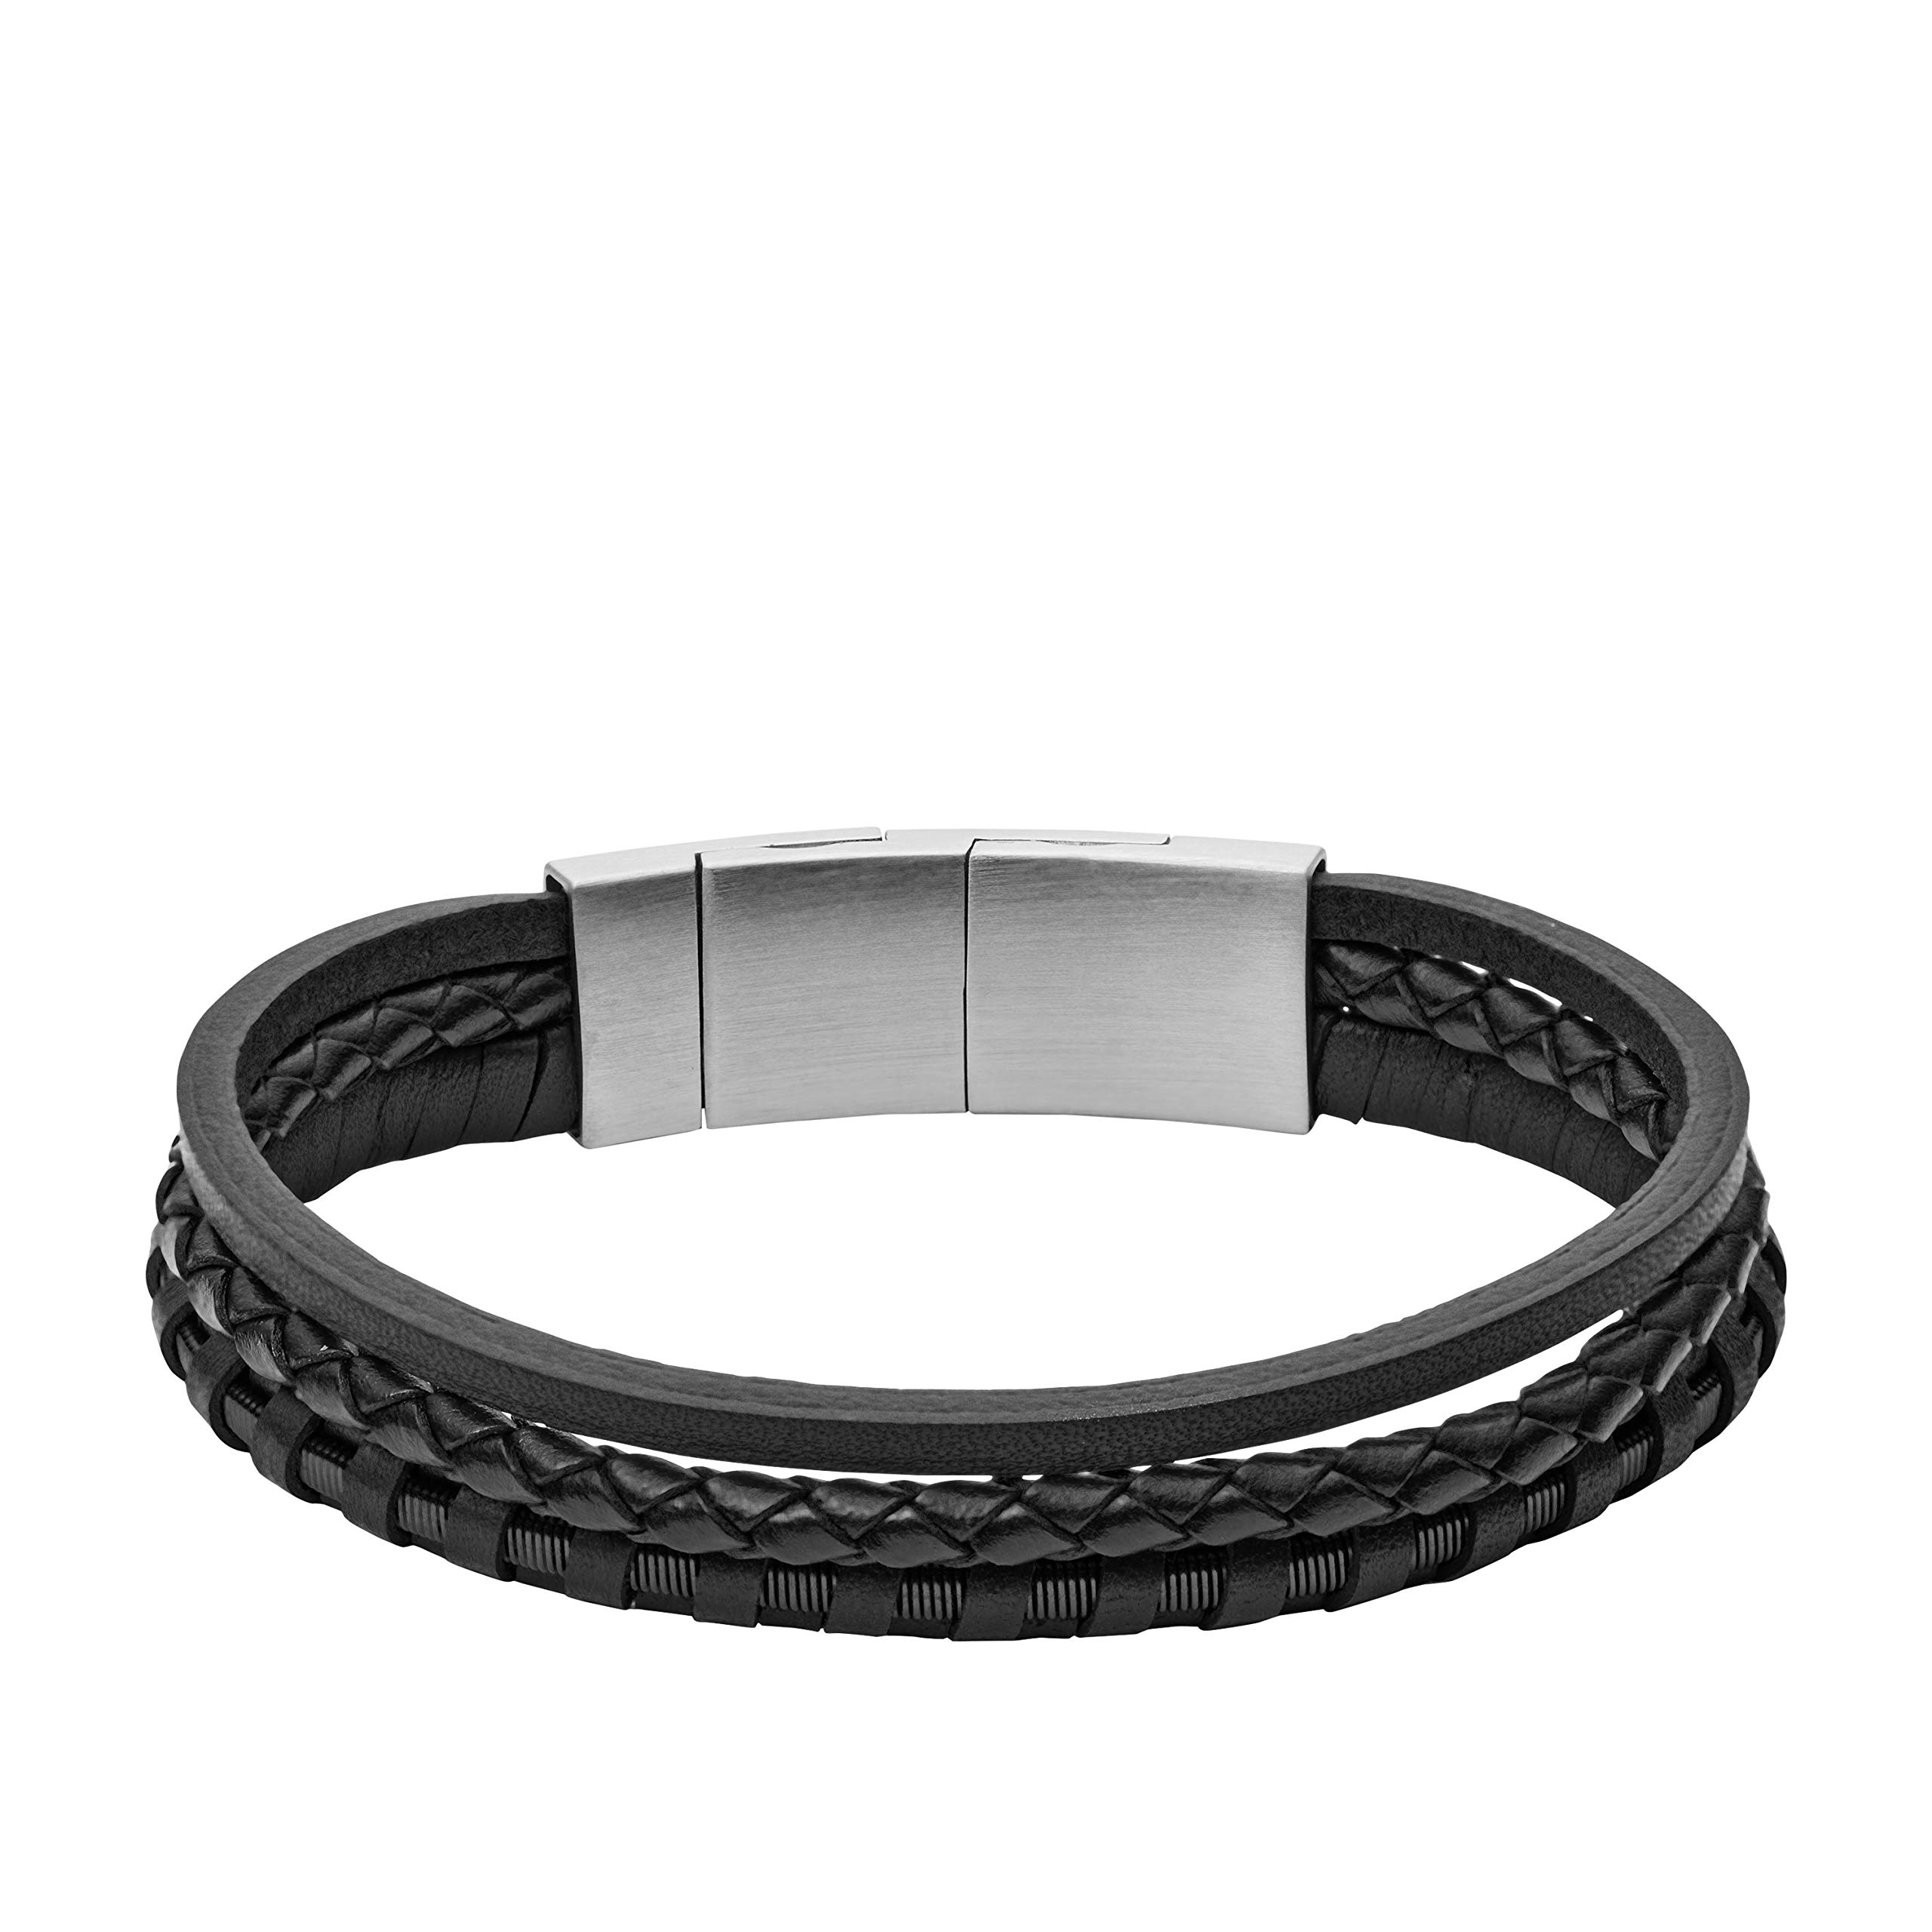 ویکالا · خرید  اصل اورجینال · خرید از آمازون · Fossil Men's Black Multi-Strand Braided Leather Bracelet, One Size wekala · ویکالا